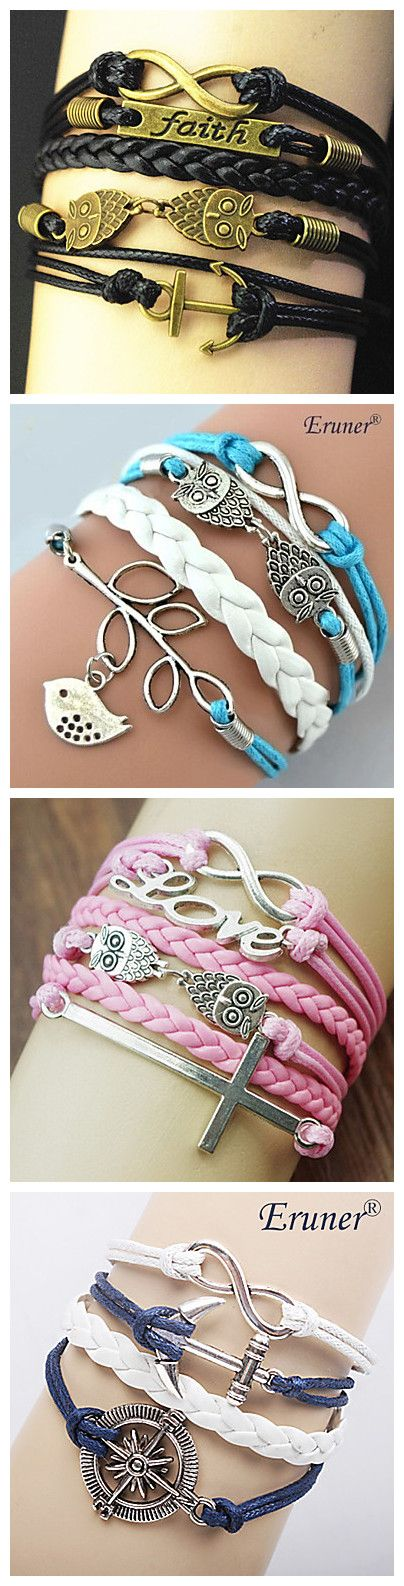 Handmade bracelets with different colors. This unique design could perfectly match your summer. Get your favorite one!